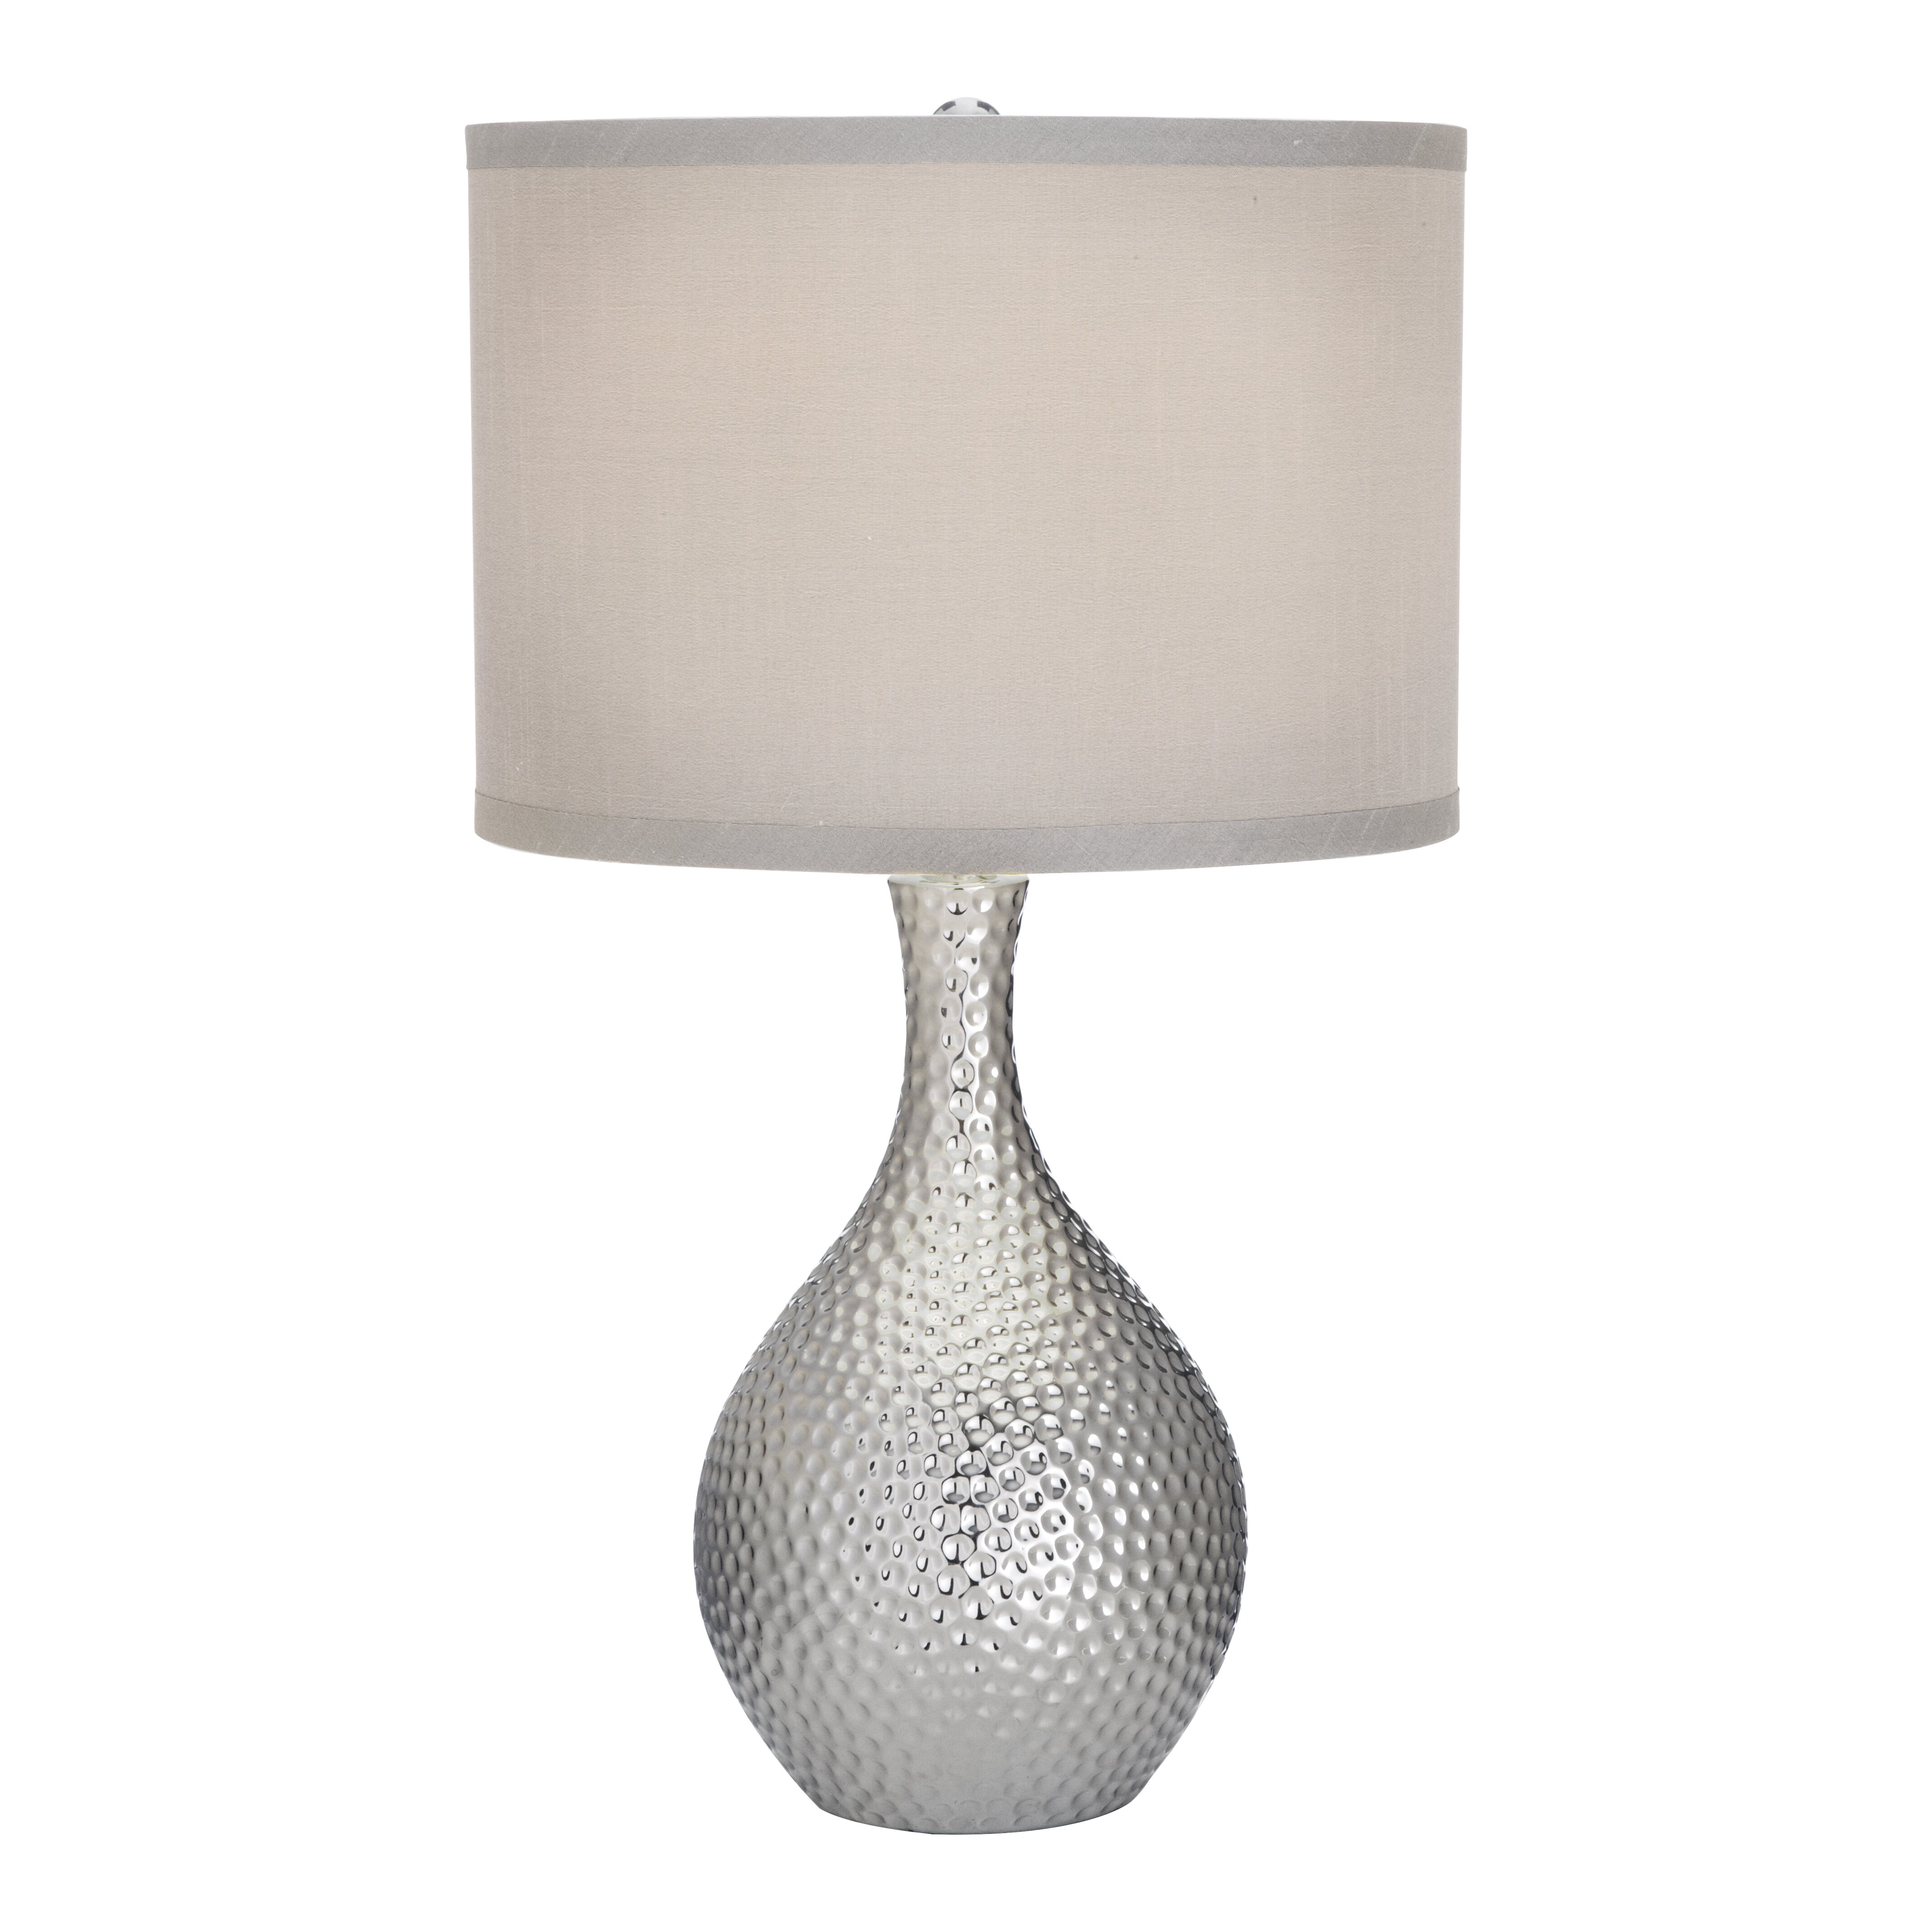 Great night lamps - Gama 21 5 Table Lamp With Drum Shade